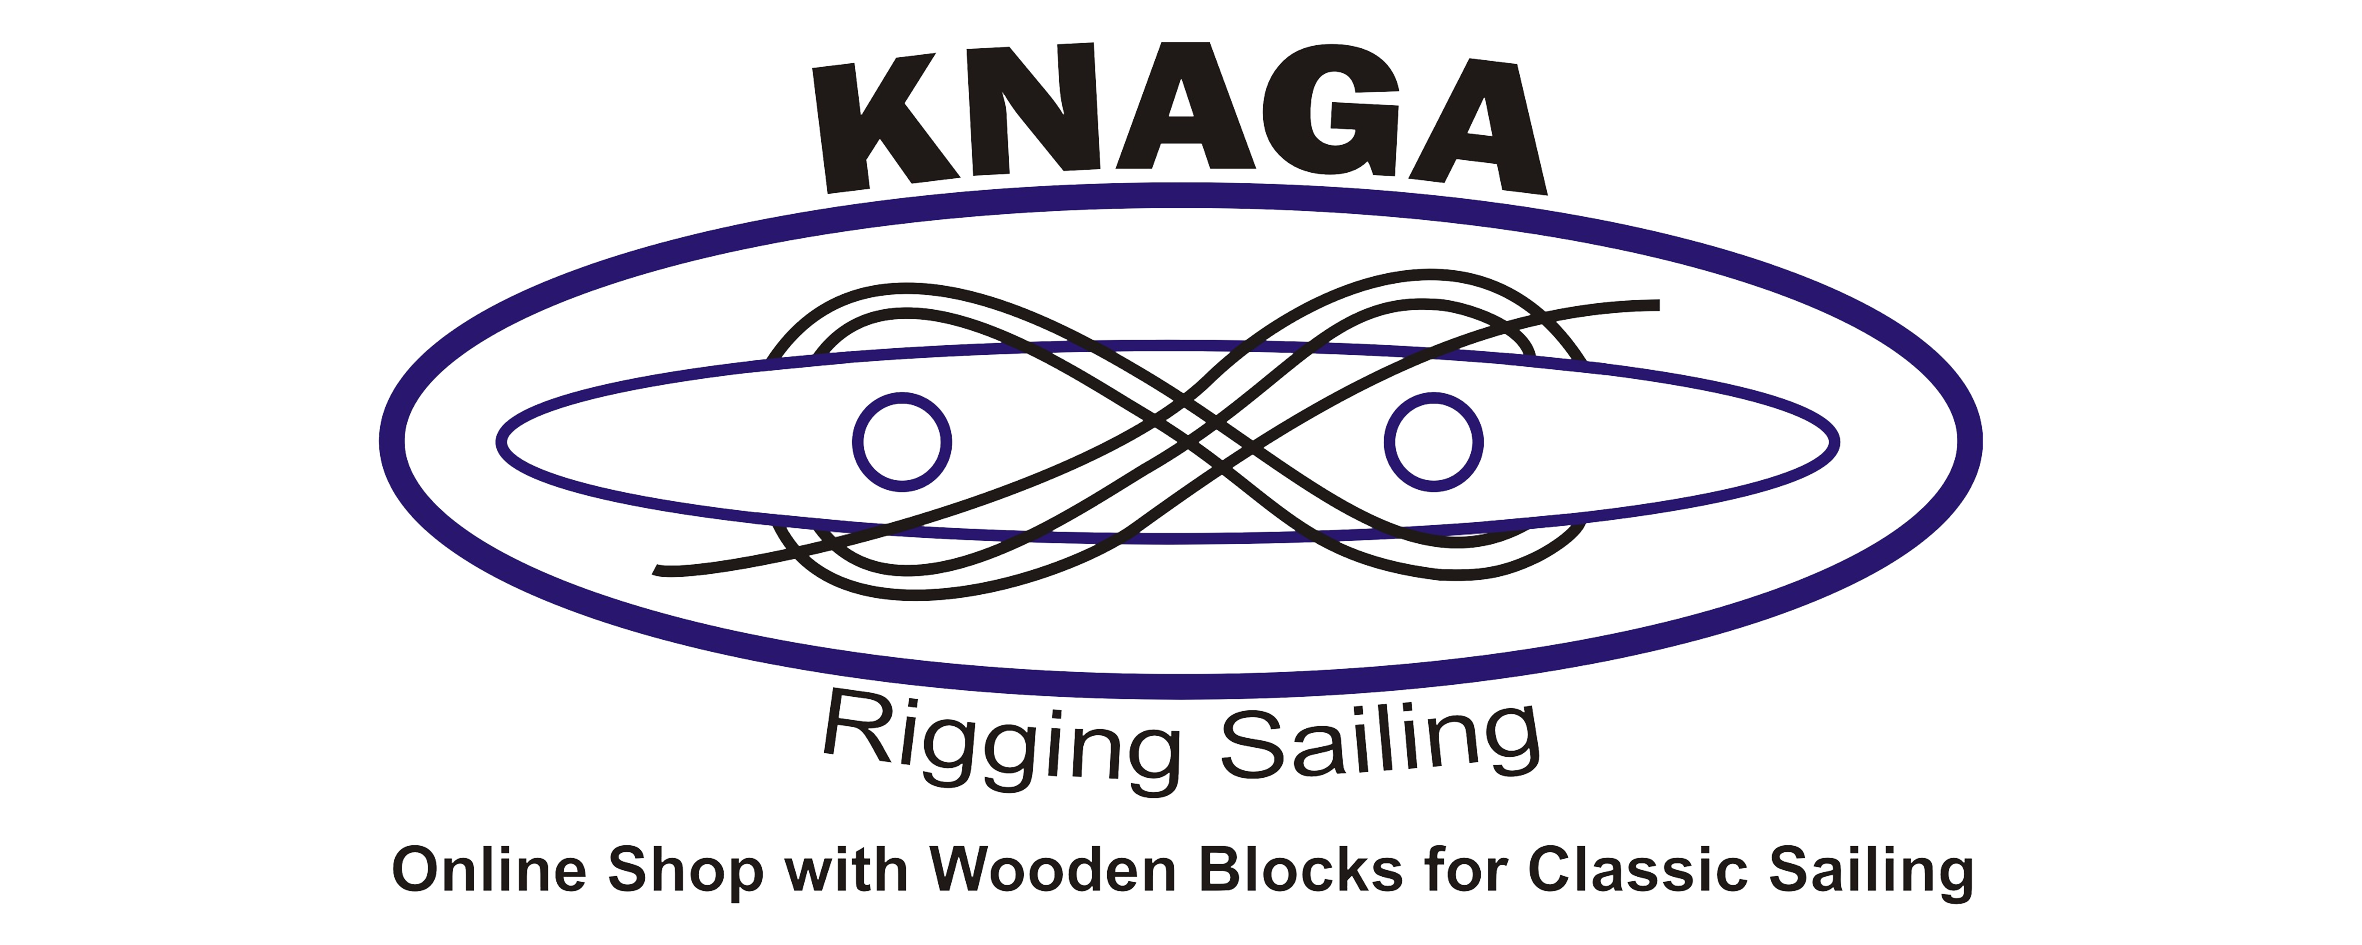 Knaga Rigging Sailing